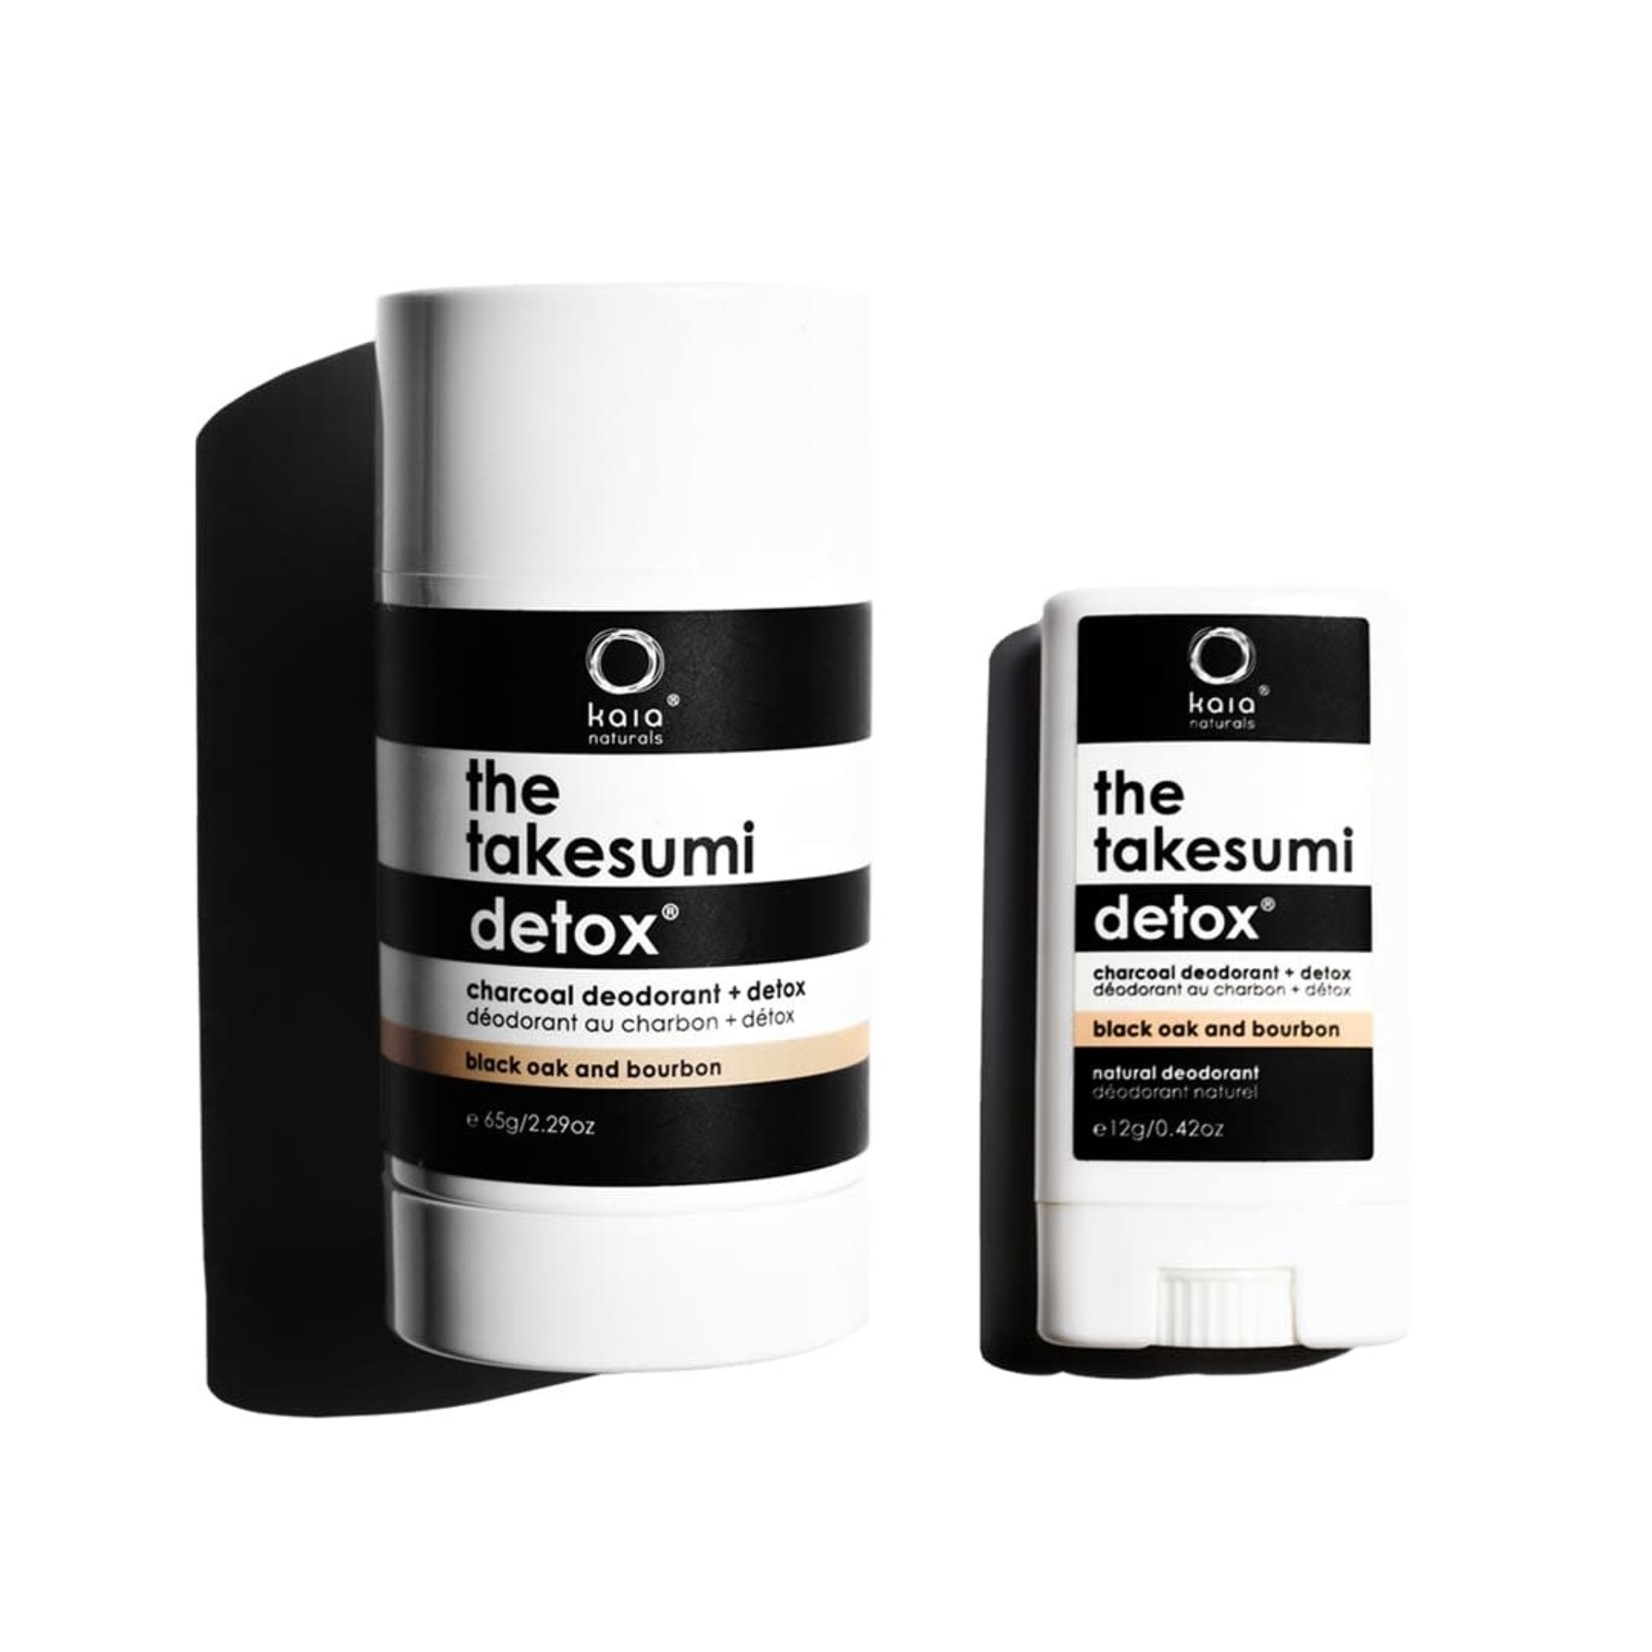 KAIA NATURALS THE TAKESUMI DETOX BLACK OAK + BOURBON CHARCOAL DEODORANT